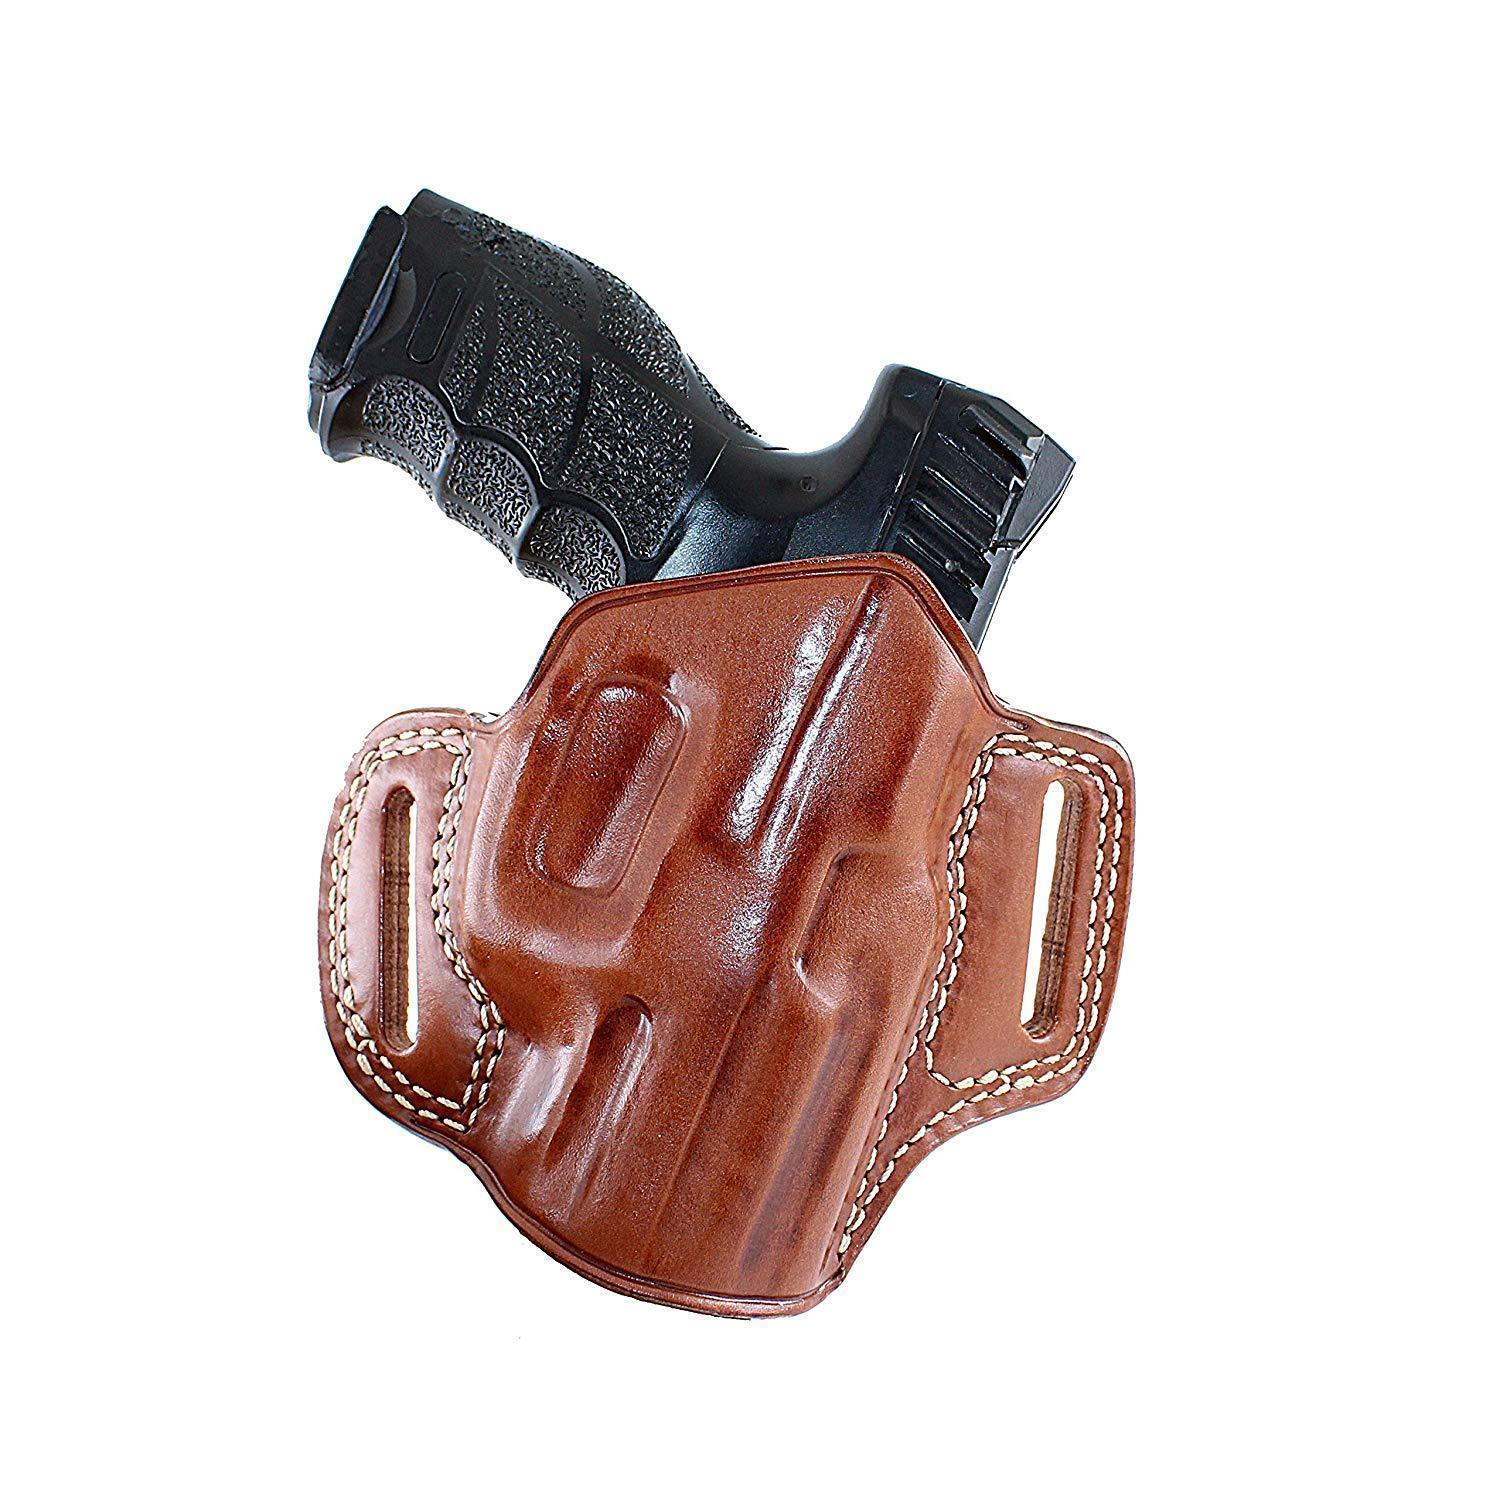 Leather Pancake Holster Fits Springfield and 45 similar items